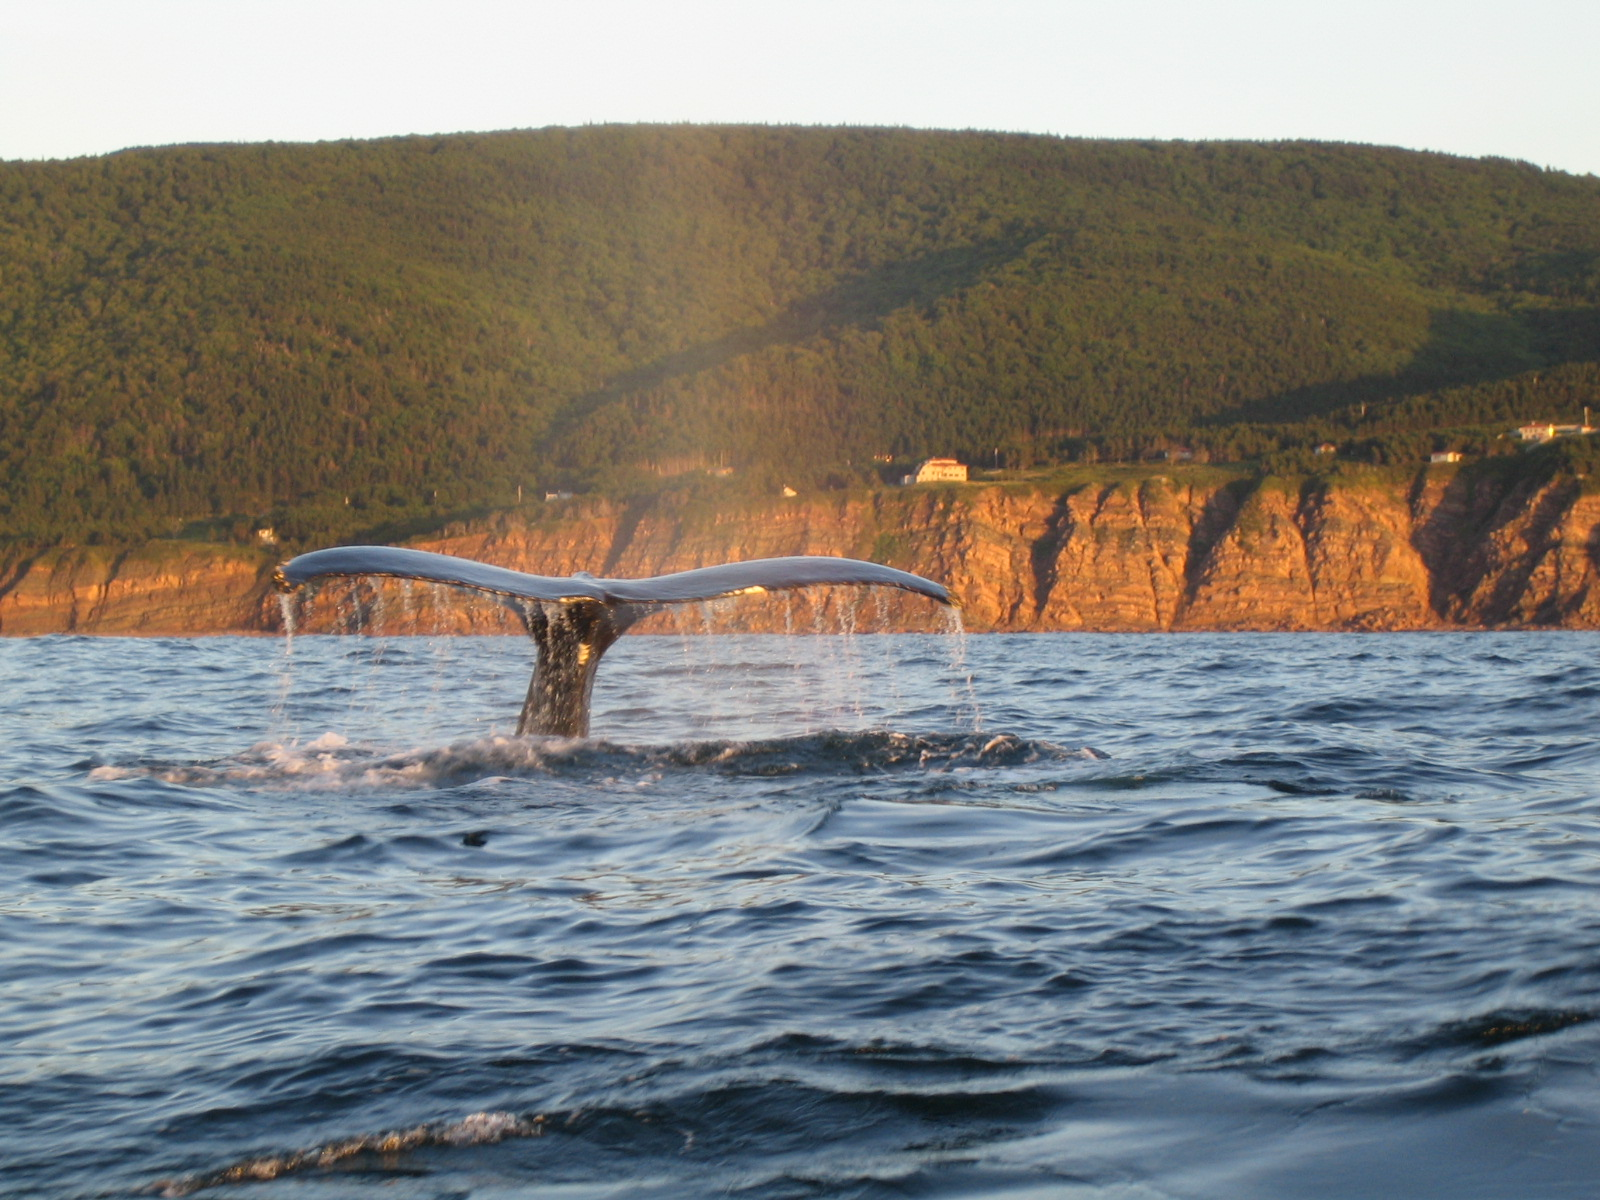 Pleasant Bay Whale Watching